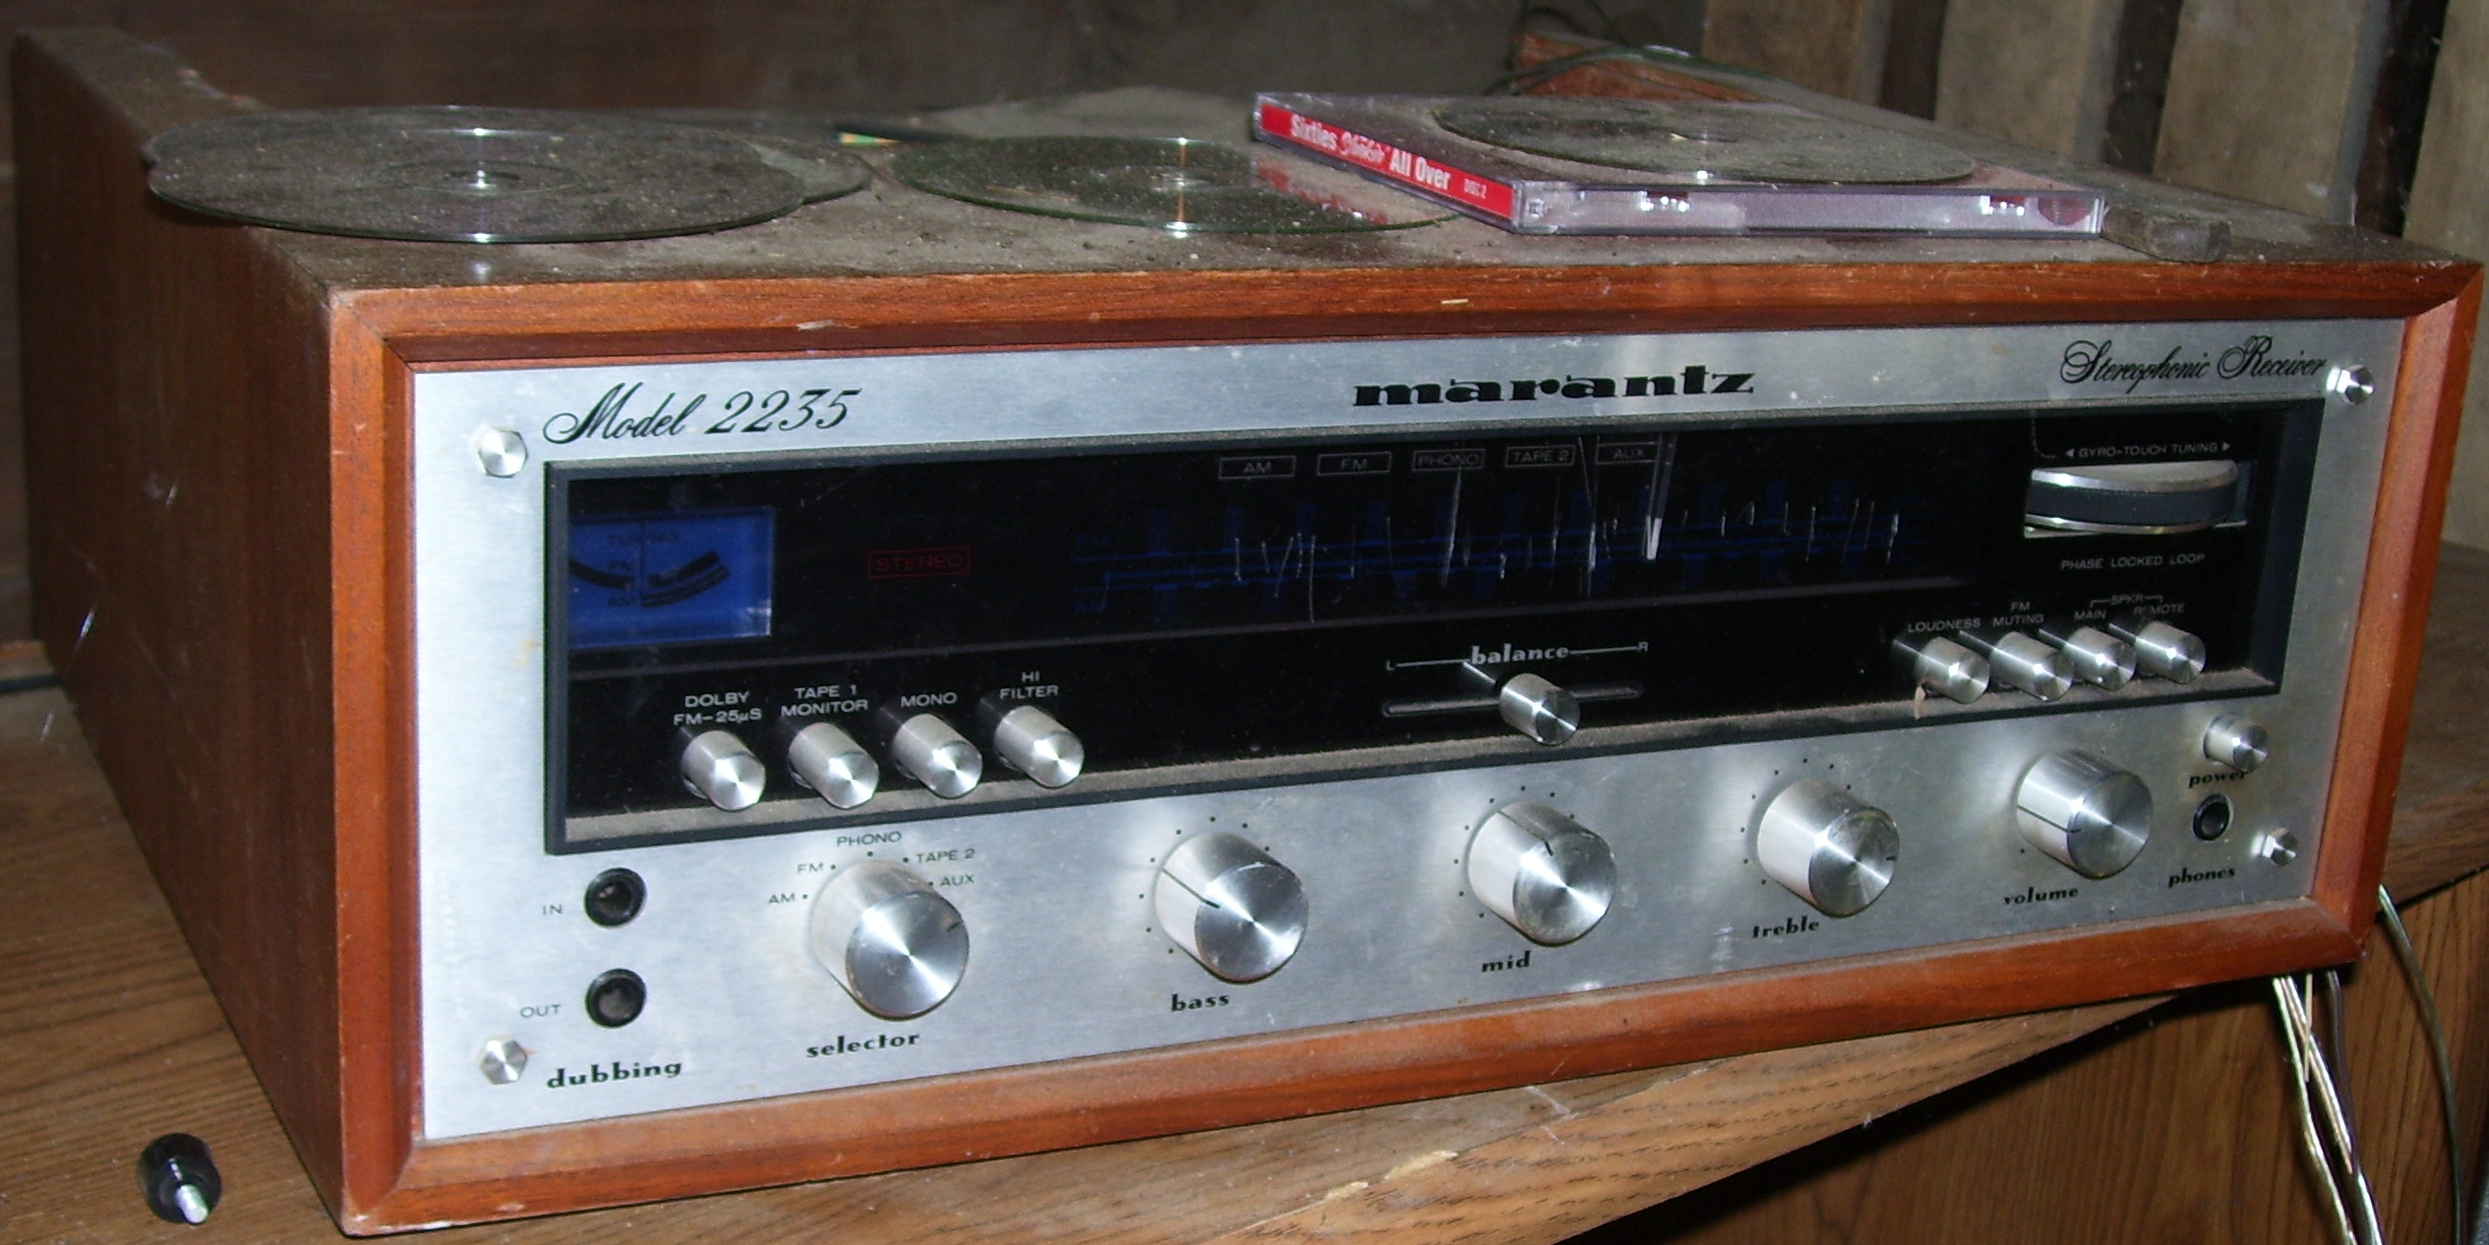 File:Marantz Model 2235.jpg - Wikimedia Commons